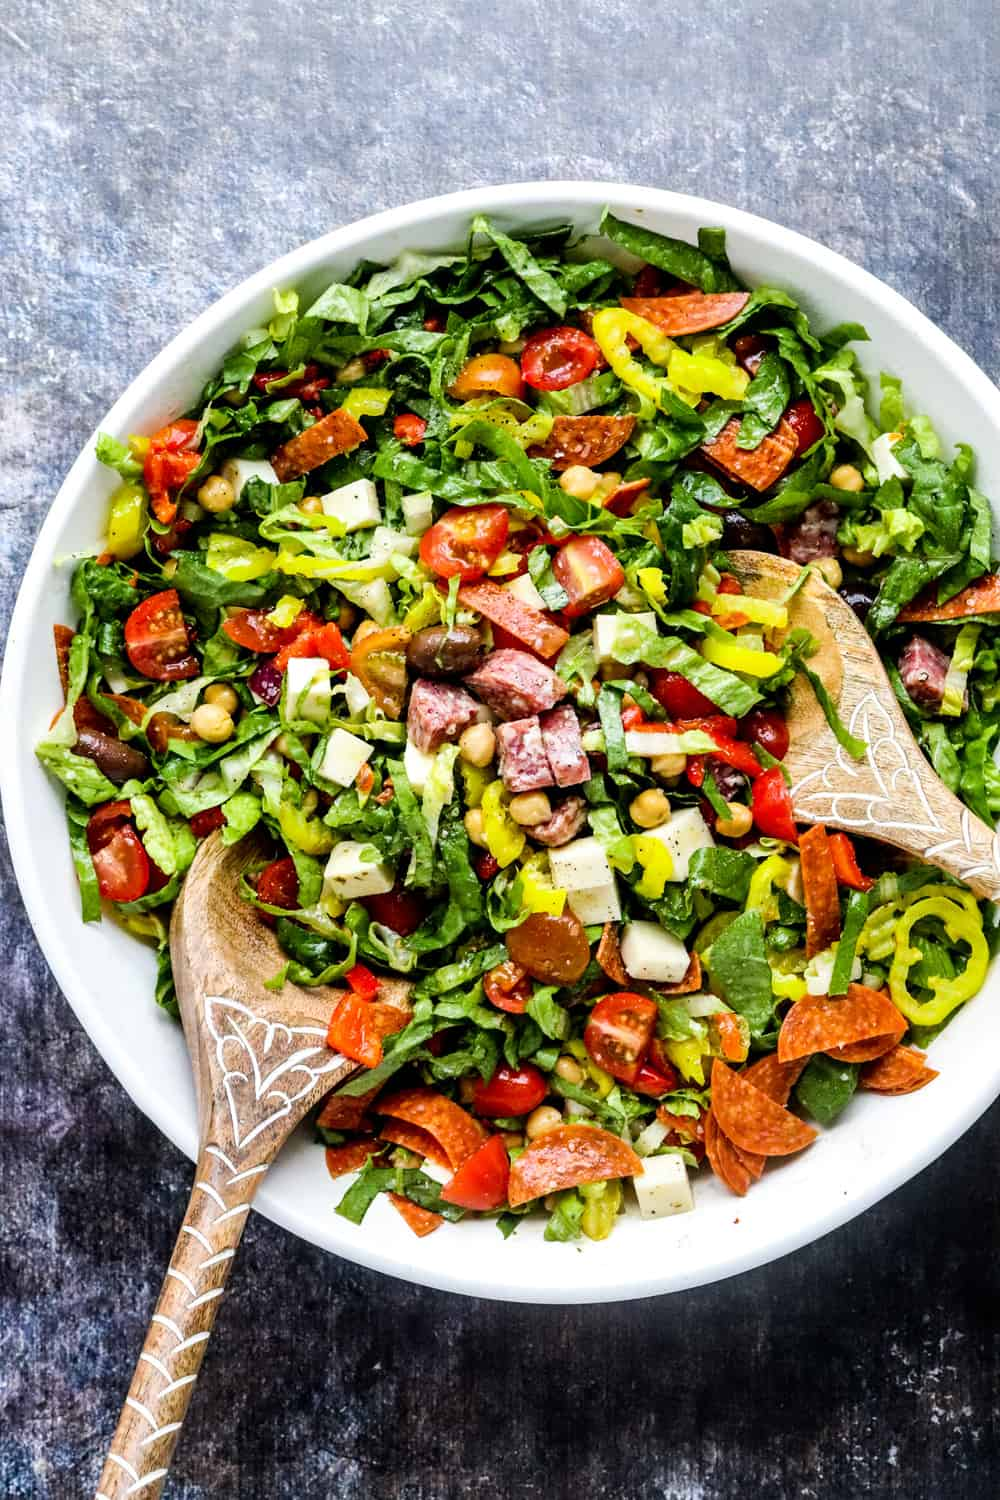 Large white bowl filled with chopped greens, tomatoes and chickpeas with two wooden spoons in it